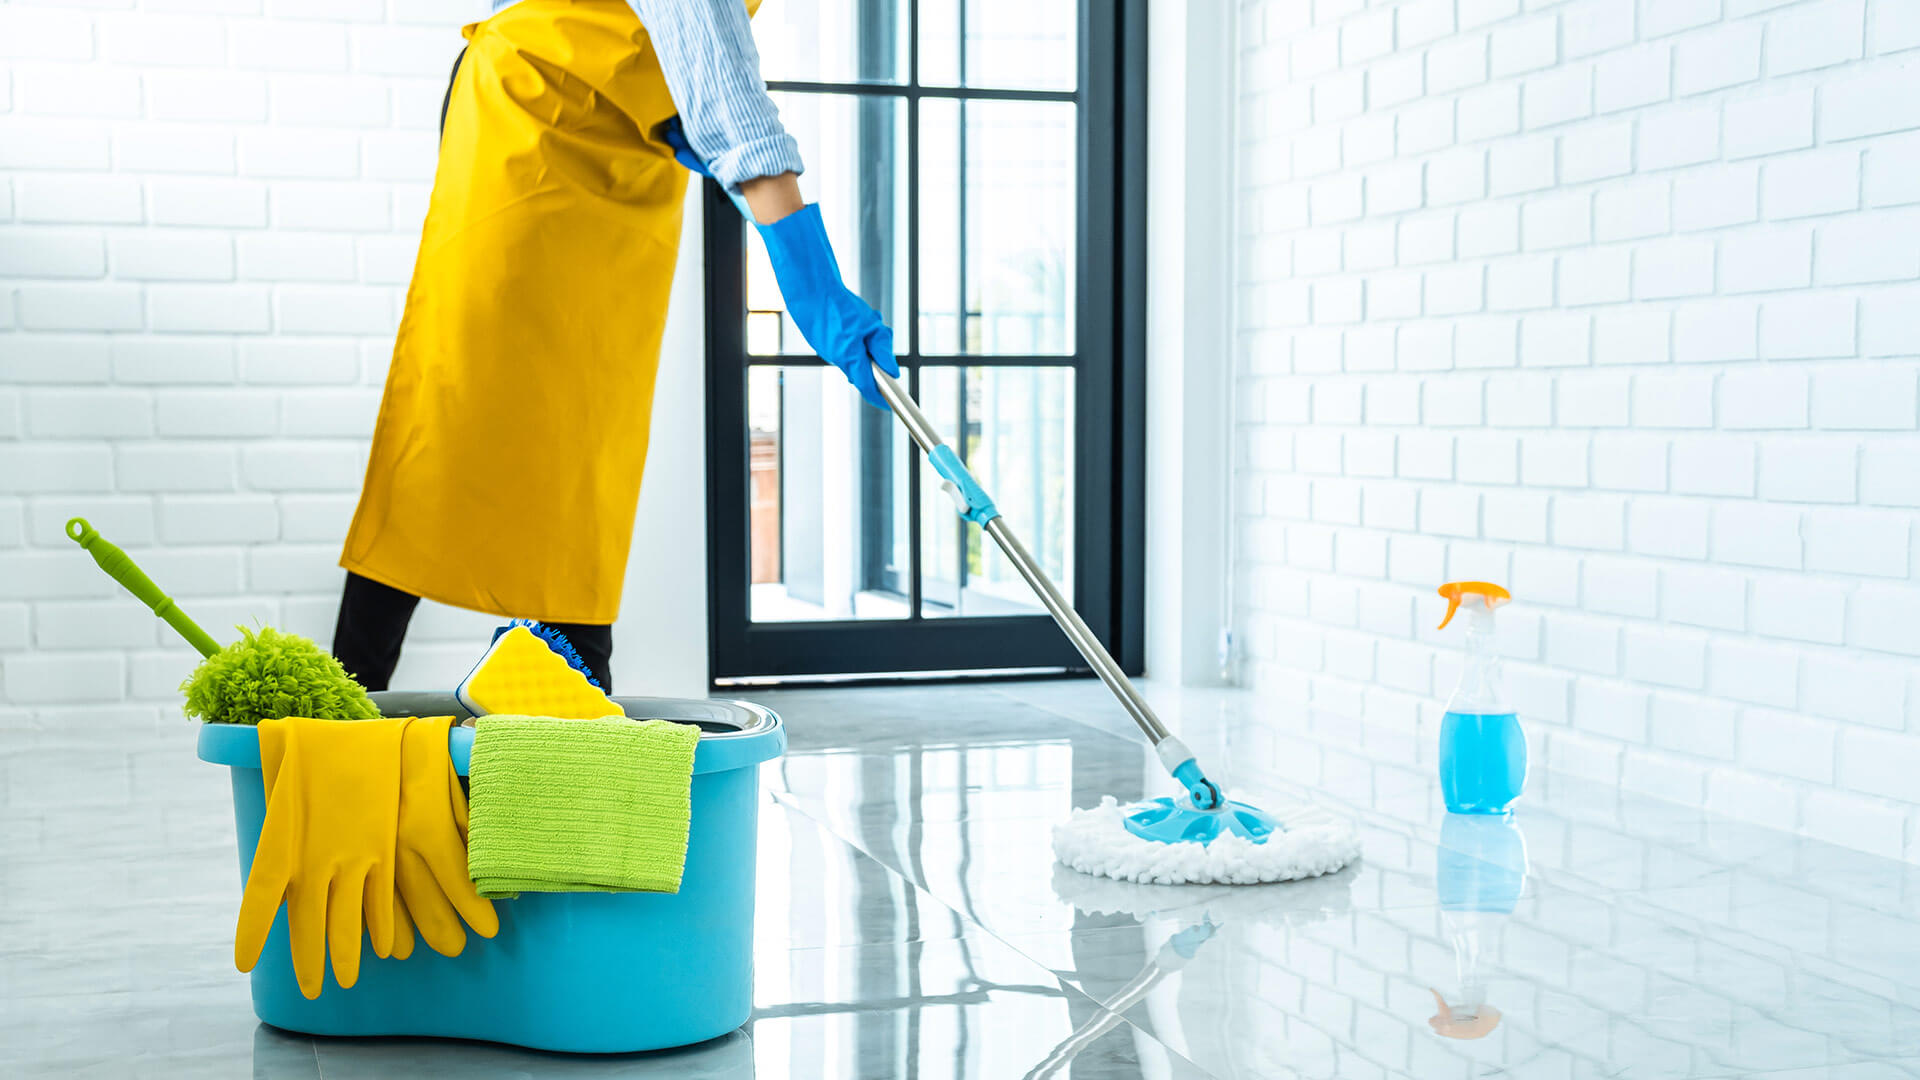 What kind of maintenance does the Cleaning company (societe de nettoyage) offer?